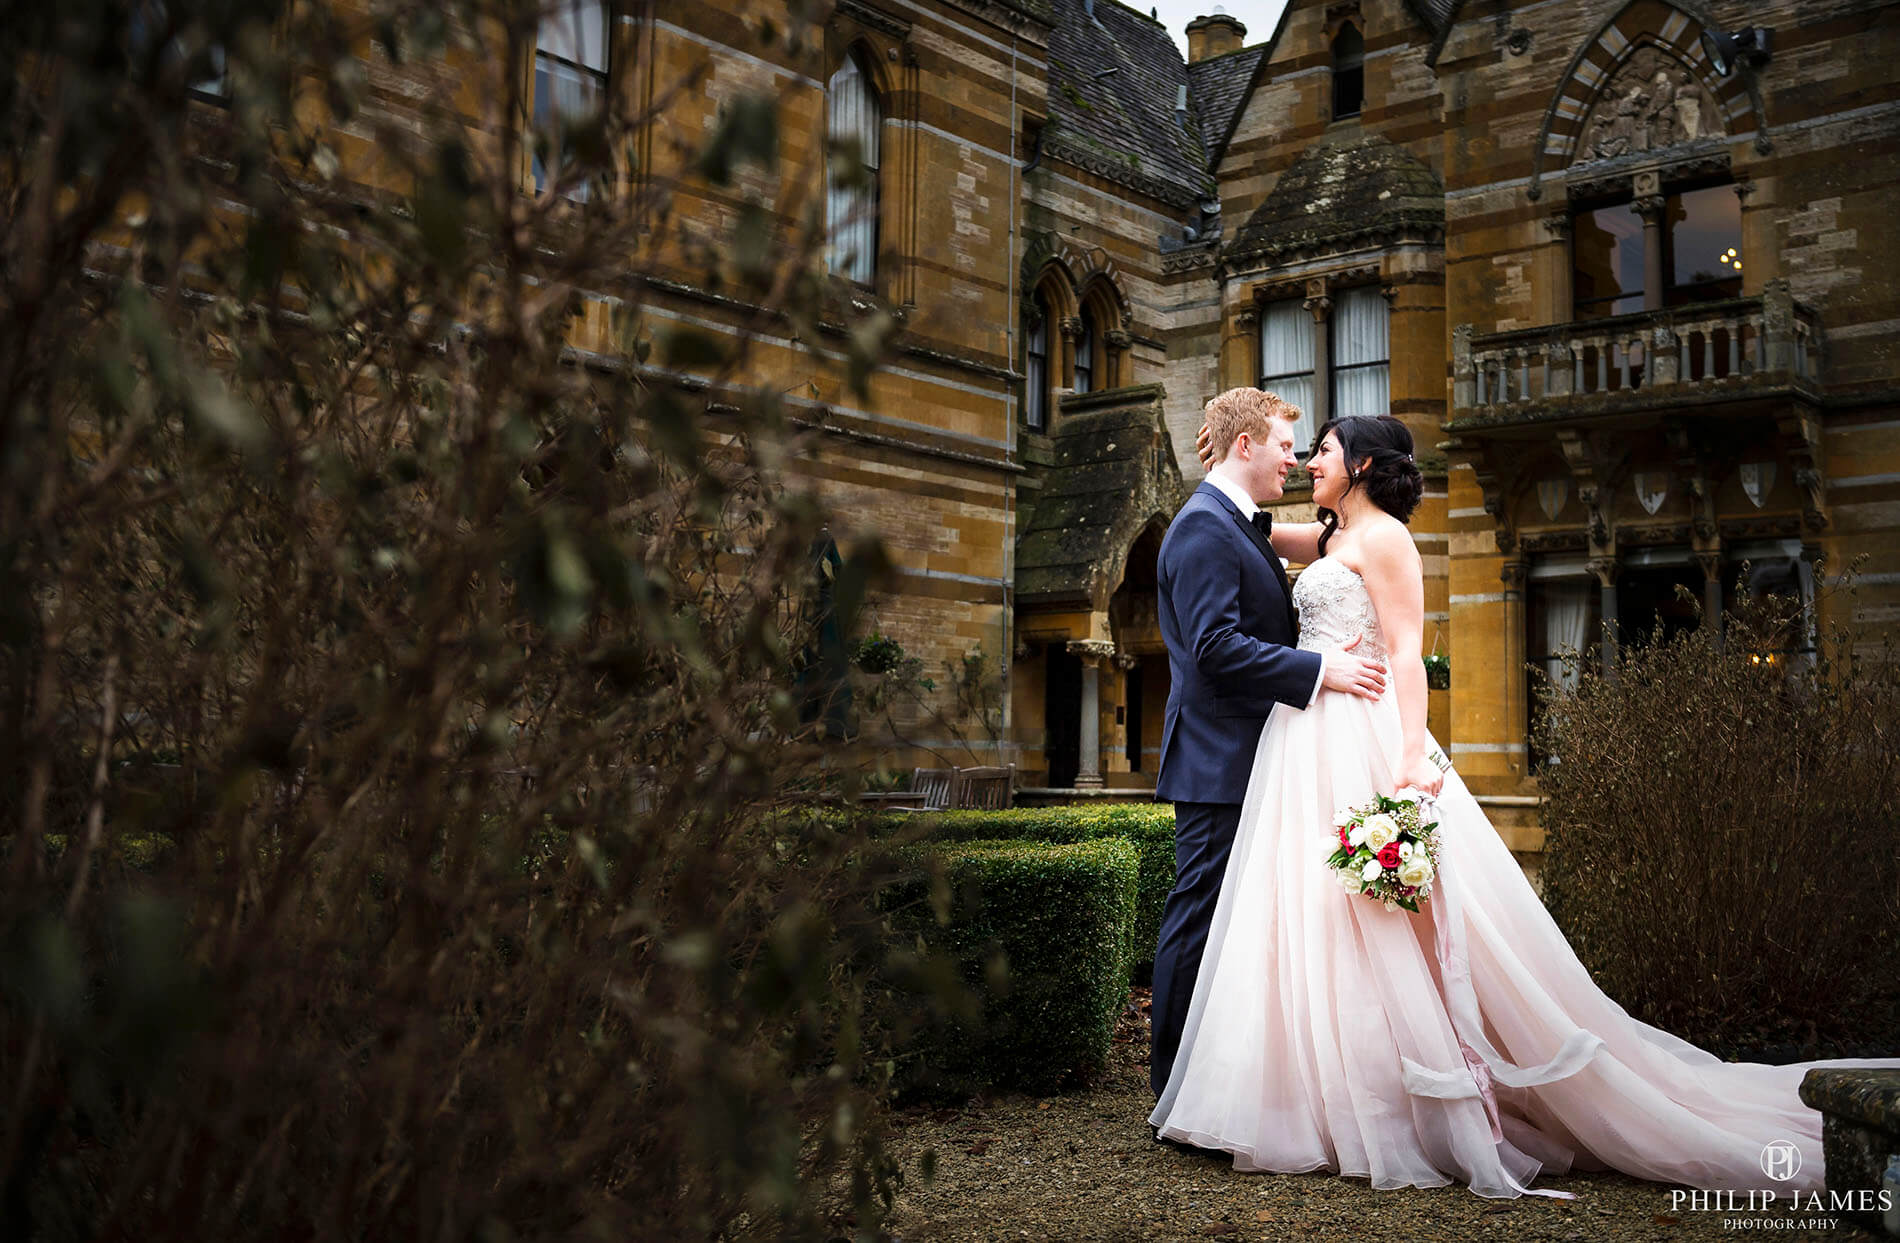 Ettington Park Hotel - Wedding Photographer Birmingham - Philip James, covering Solihull, The West Midlands, the UK & overseas - Mahsa & Anthony